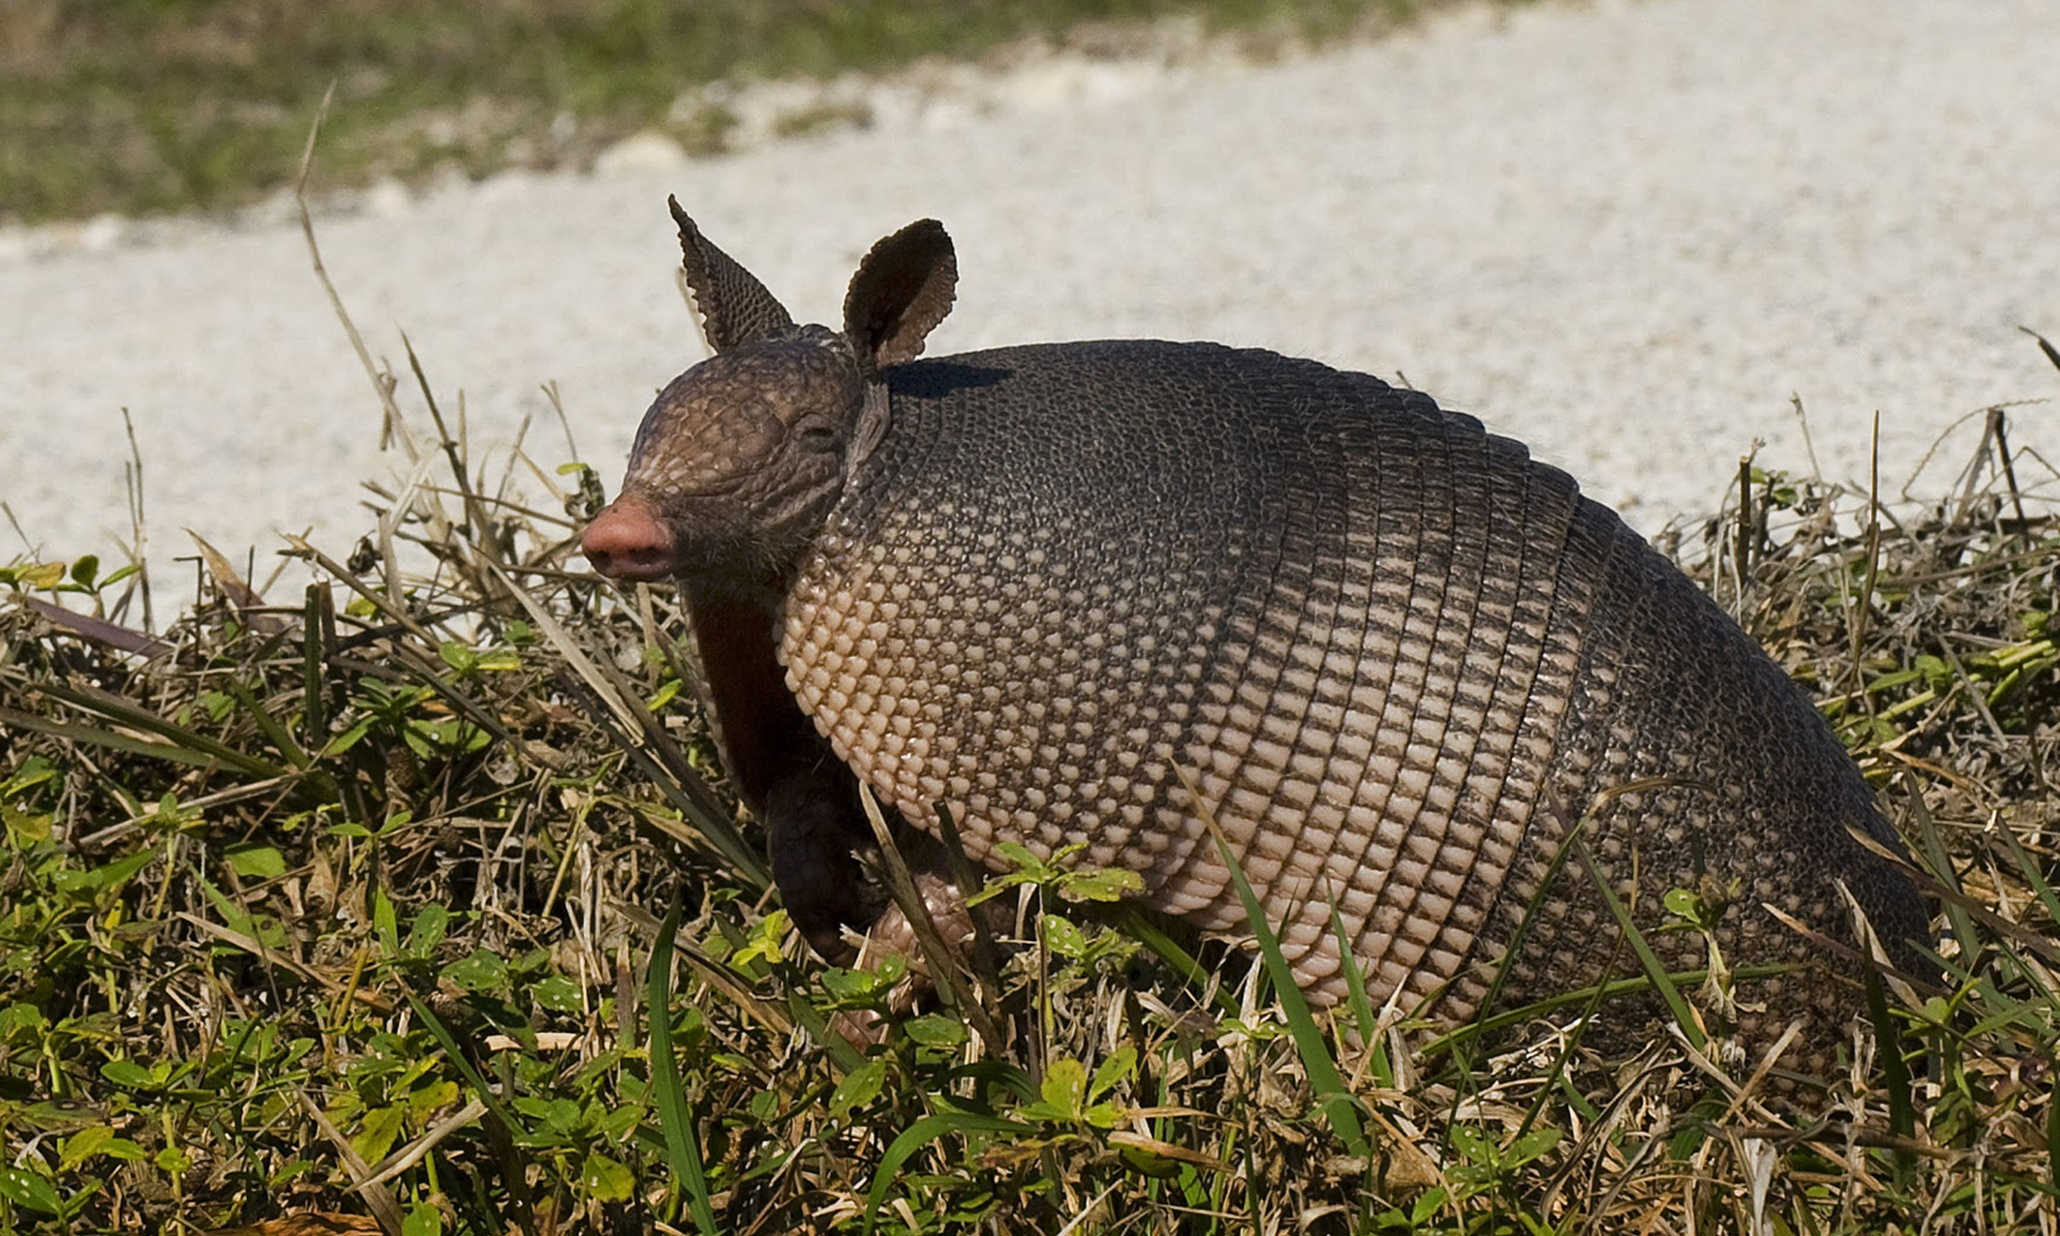 Georgia man wounds mother-in-law after bullet ricochets off armadillo